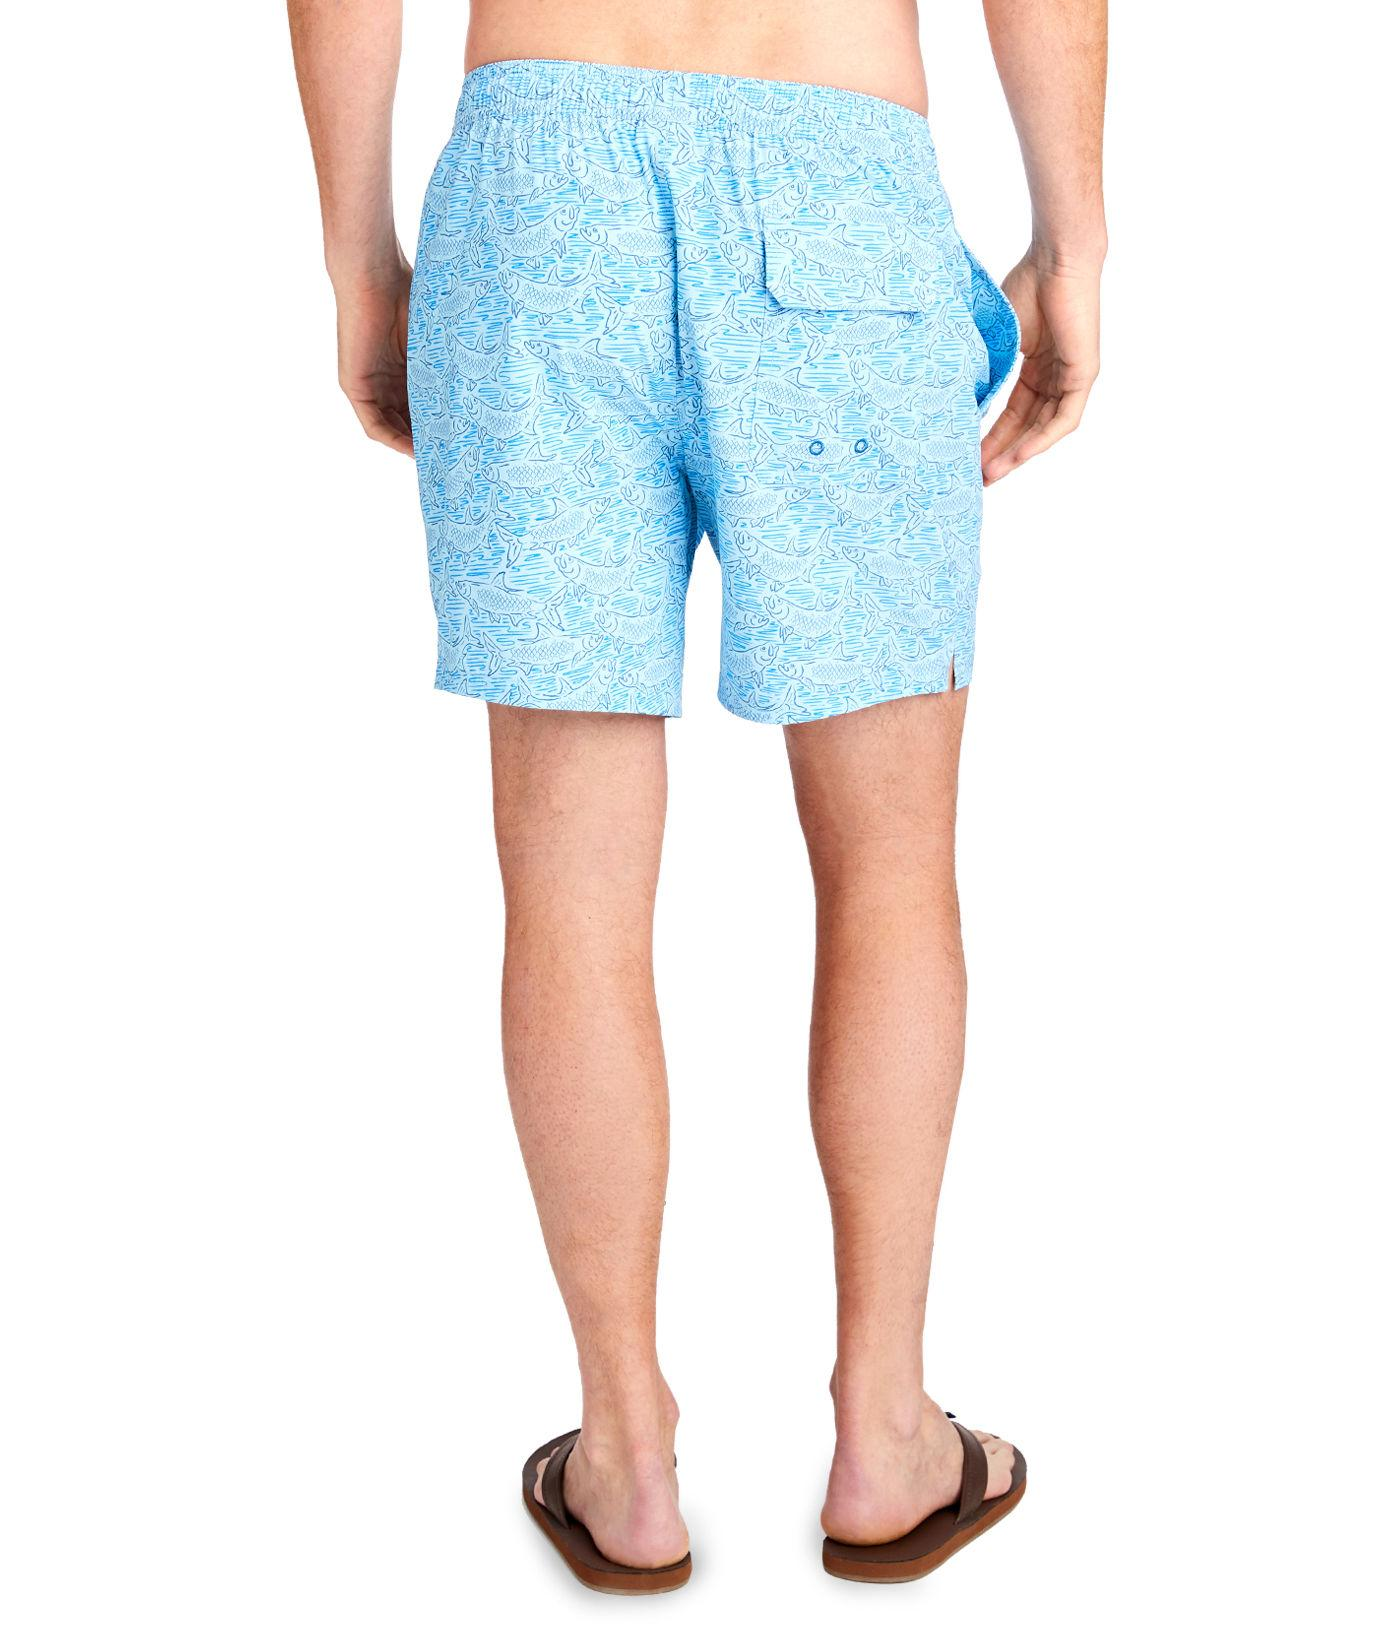 613f62466a Lyst - Vineyard Vines Tarpon Sketch Chappy Trunks in Blue for Men